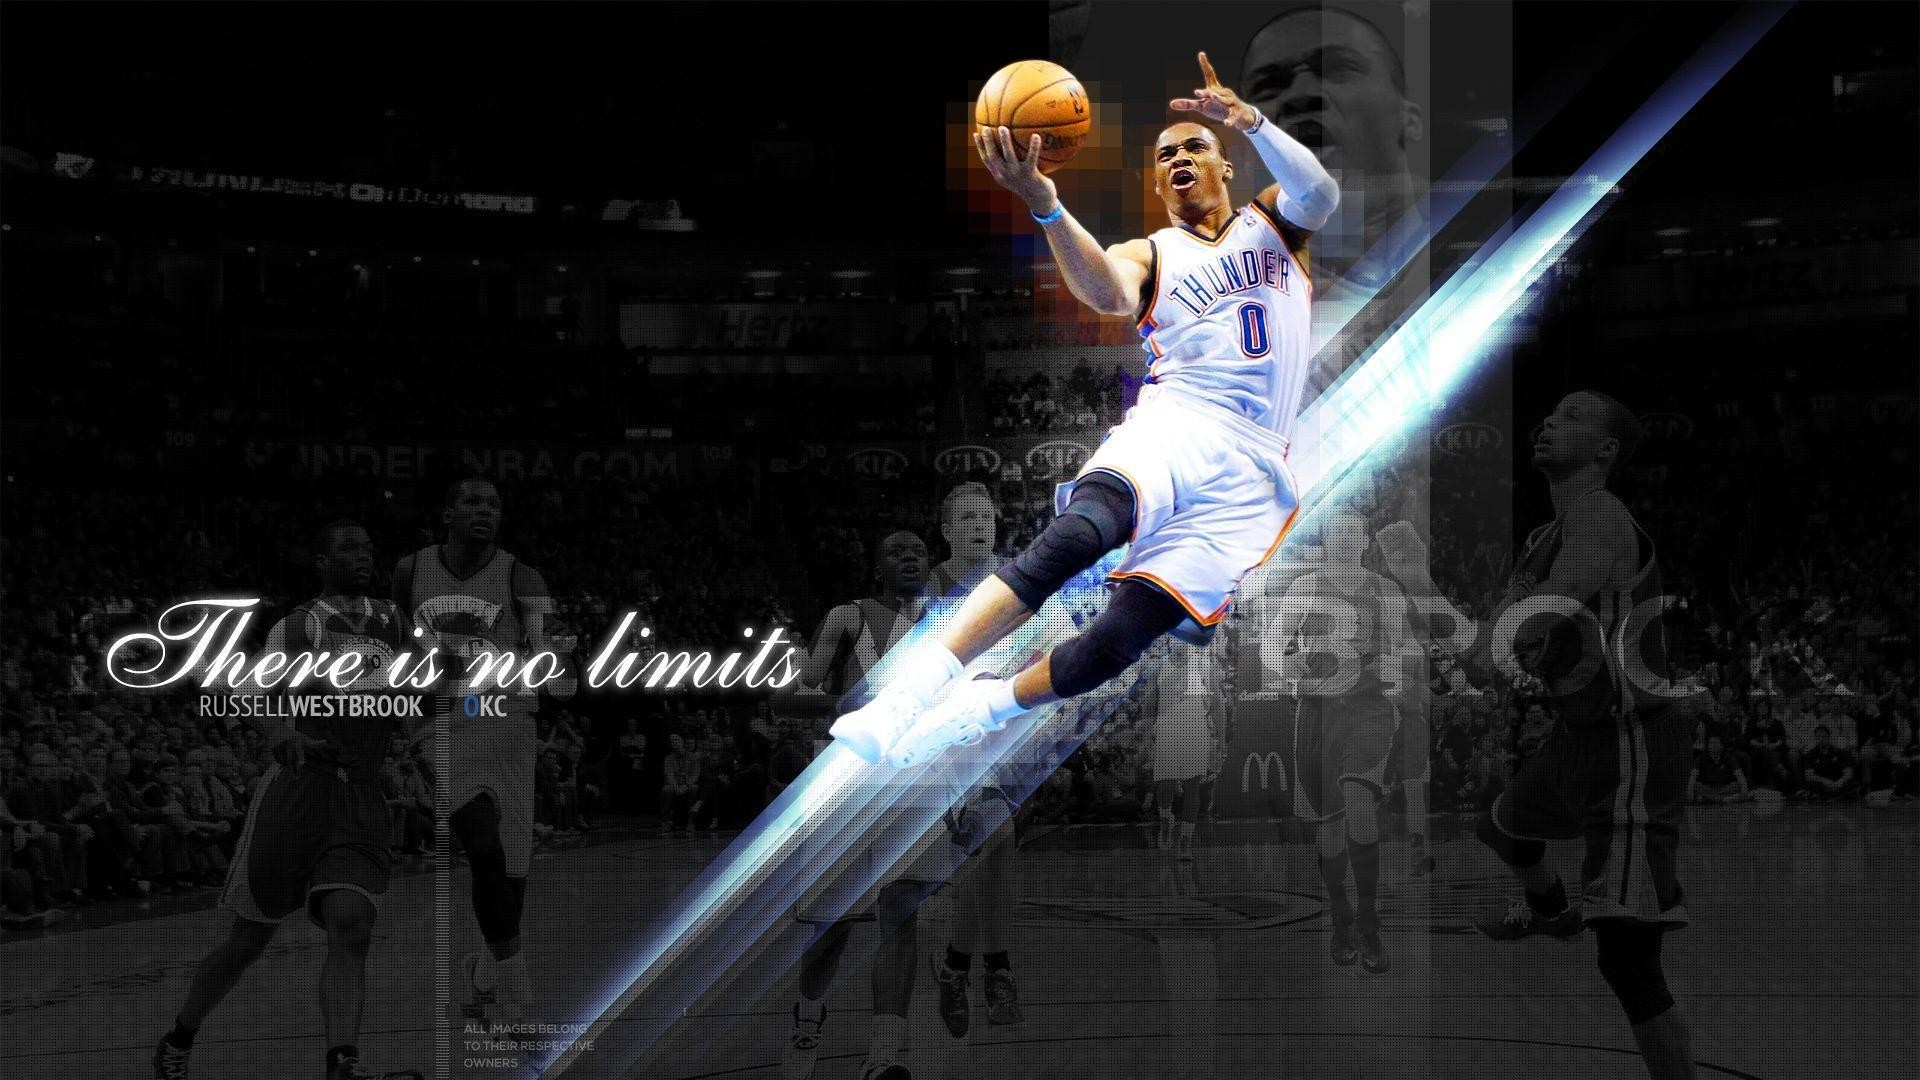 1920x1080 Russell Westbrook Wallpaper HD | HD Wallpapers, Backgrounds .